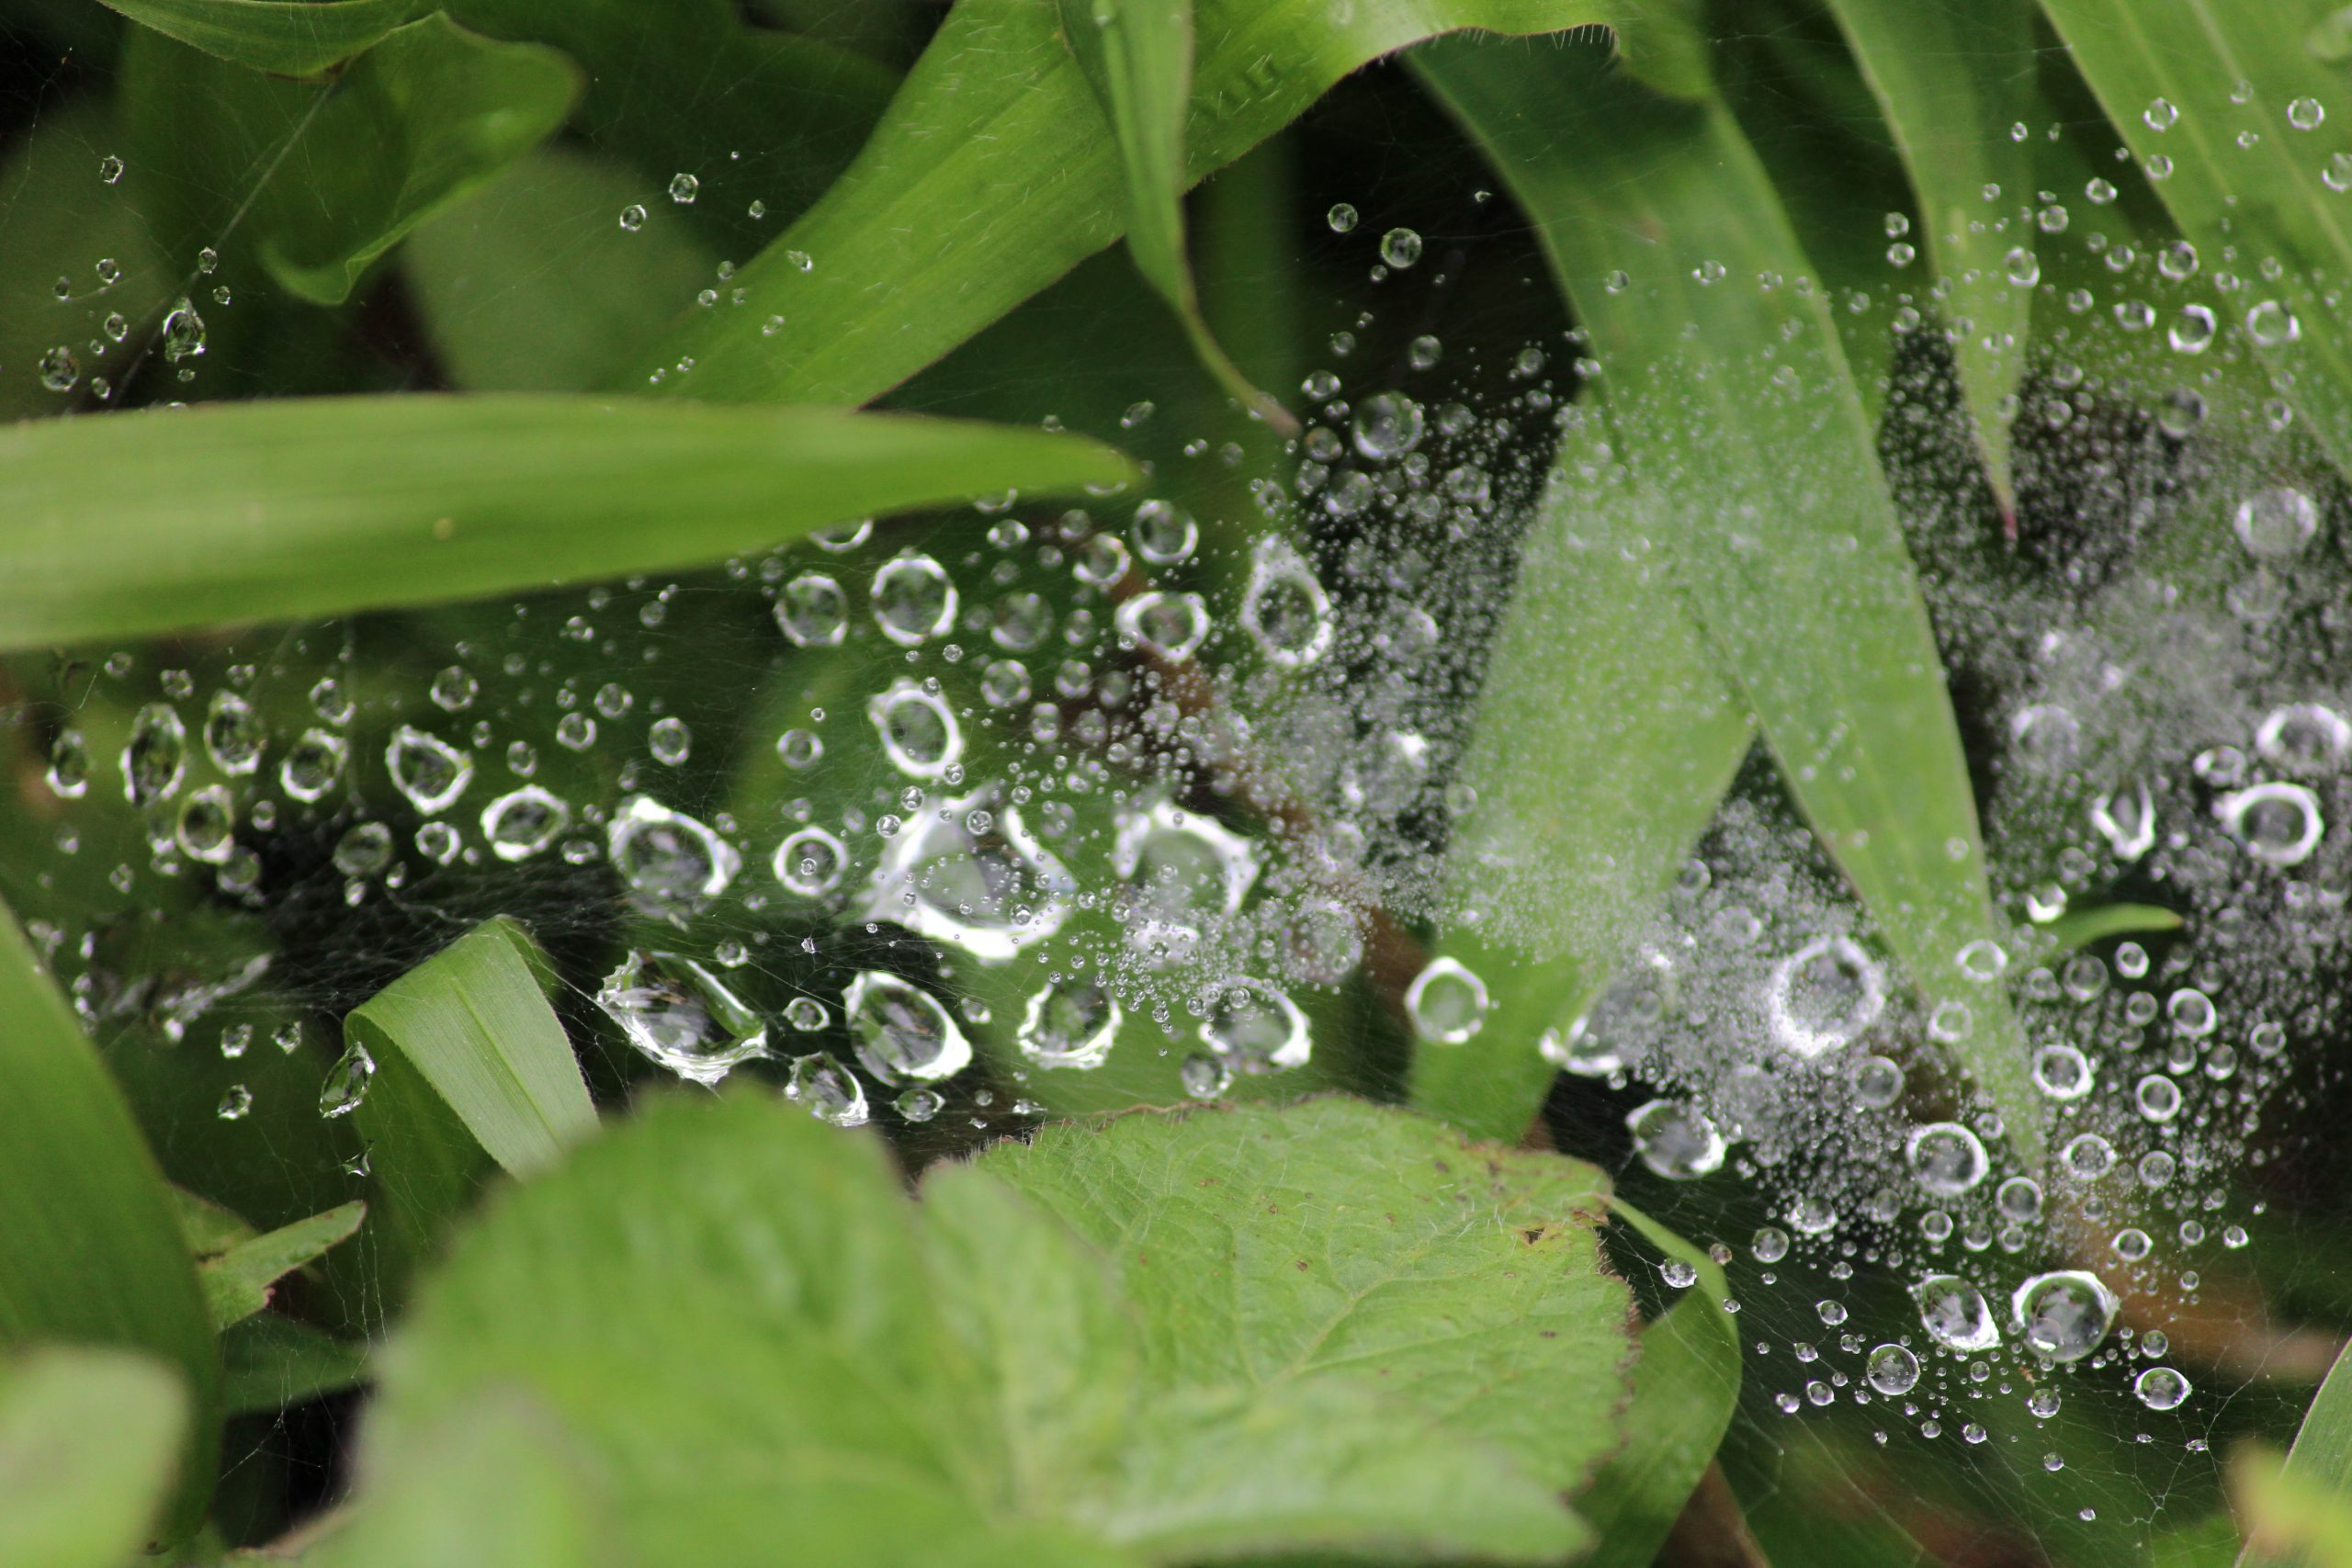 Dewdrops Trapped in a Web on Focus